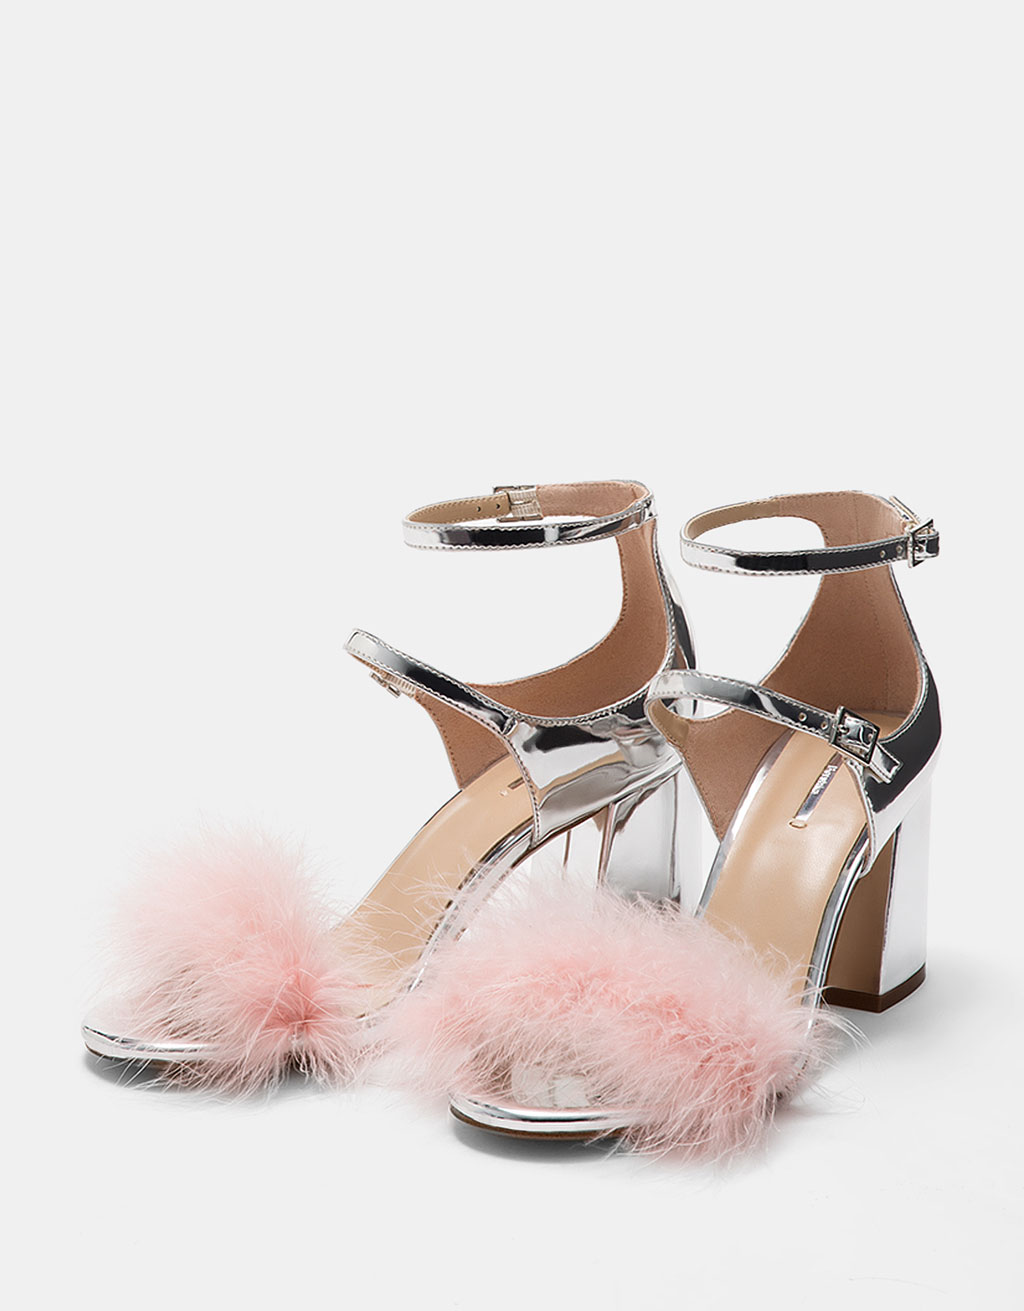 Metallic kitten heel sandals with feathers